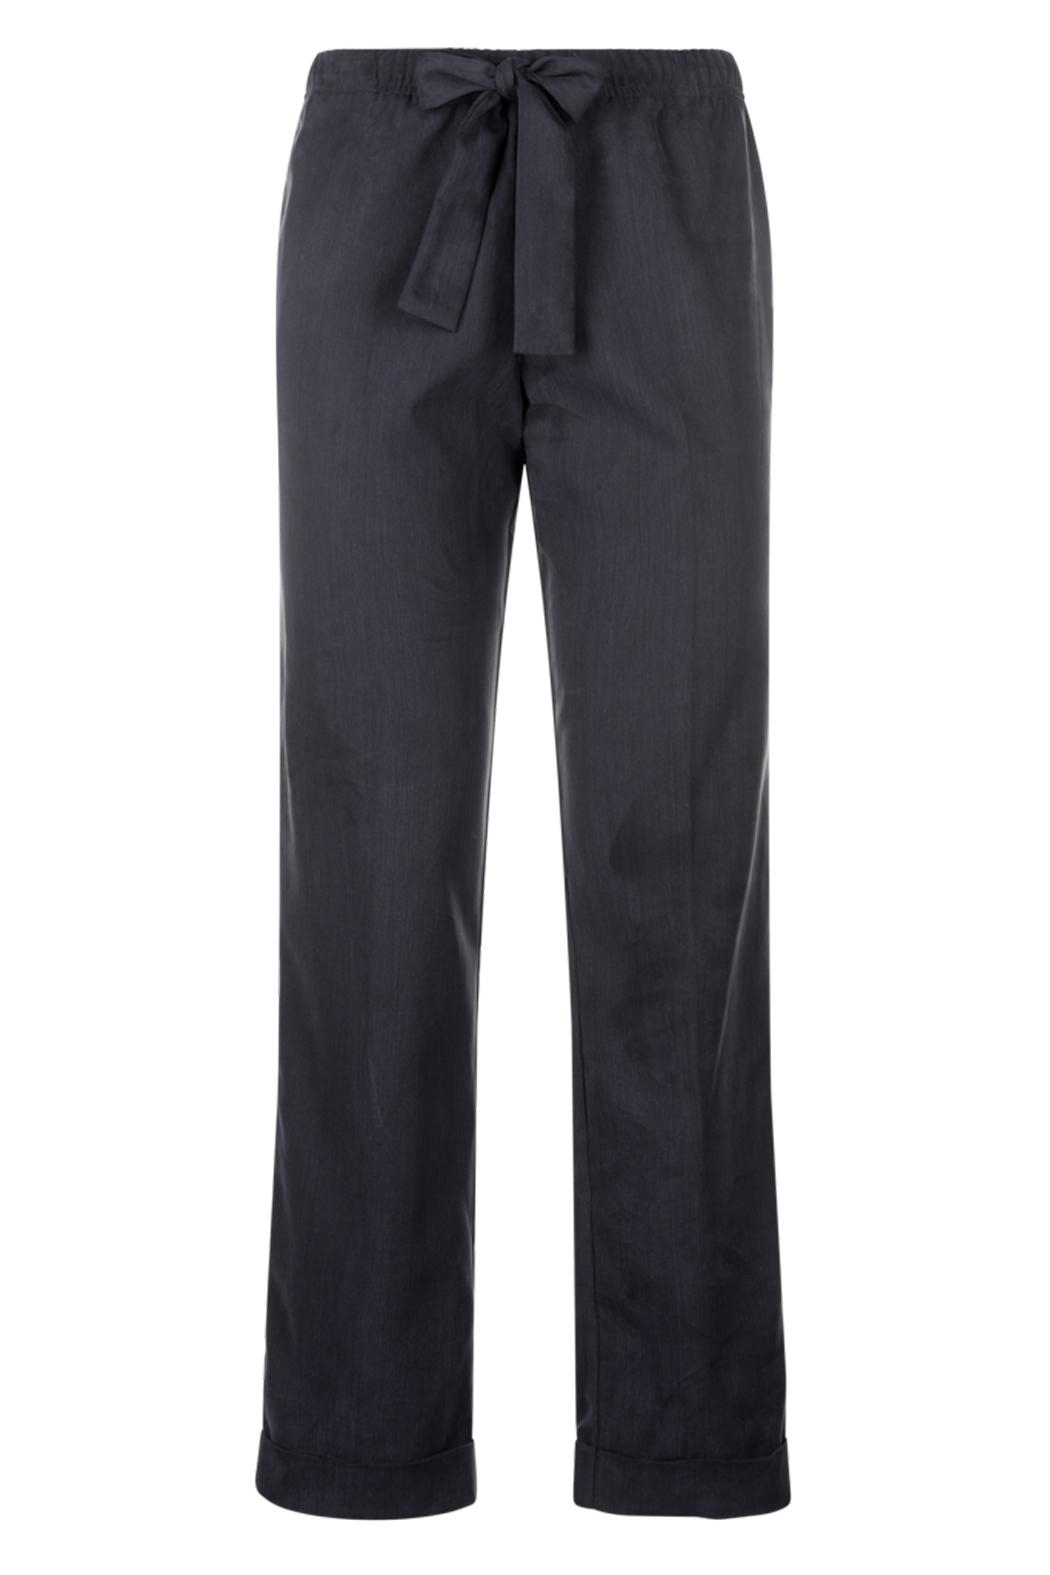 RHUMAA Stylish Casual Trouser - Main Image